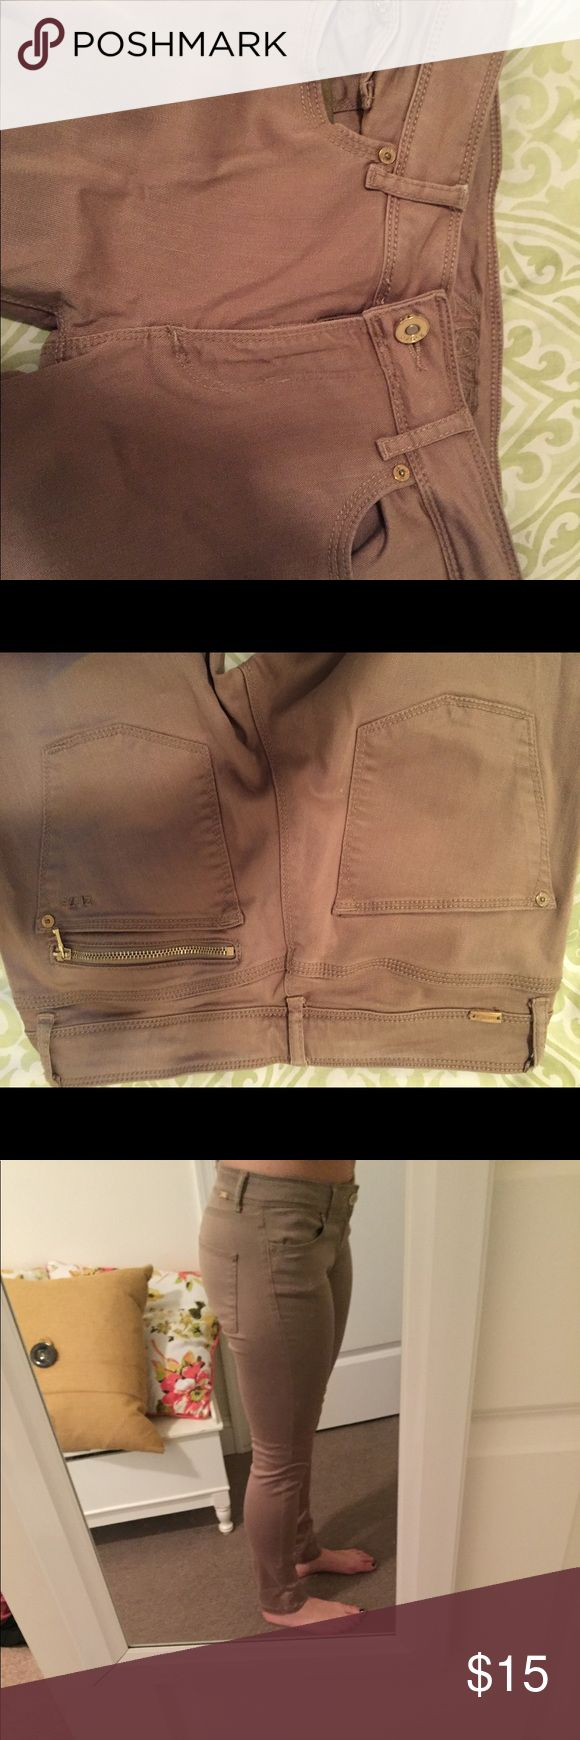 Cute Tan Skinny Jeans Perfect jeans to go with a white top! Good jeans for work too. Never worn! Z1975 Jeans Skinny